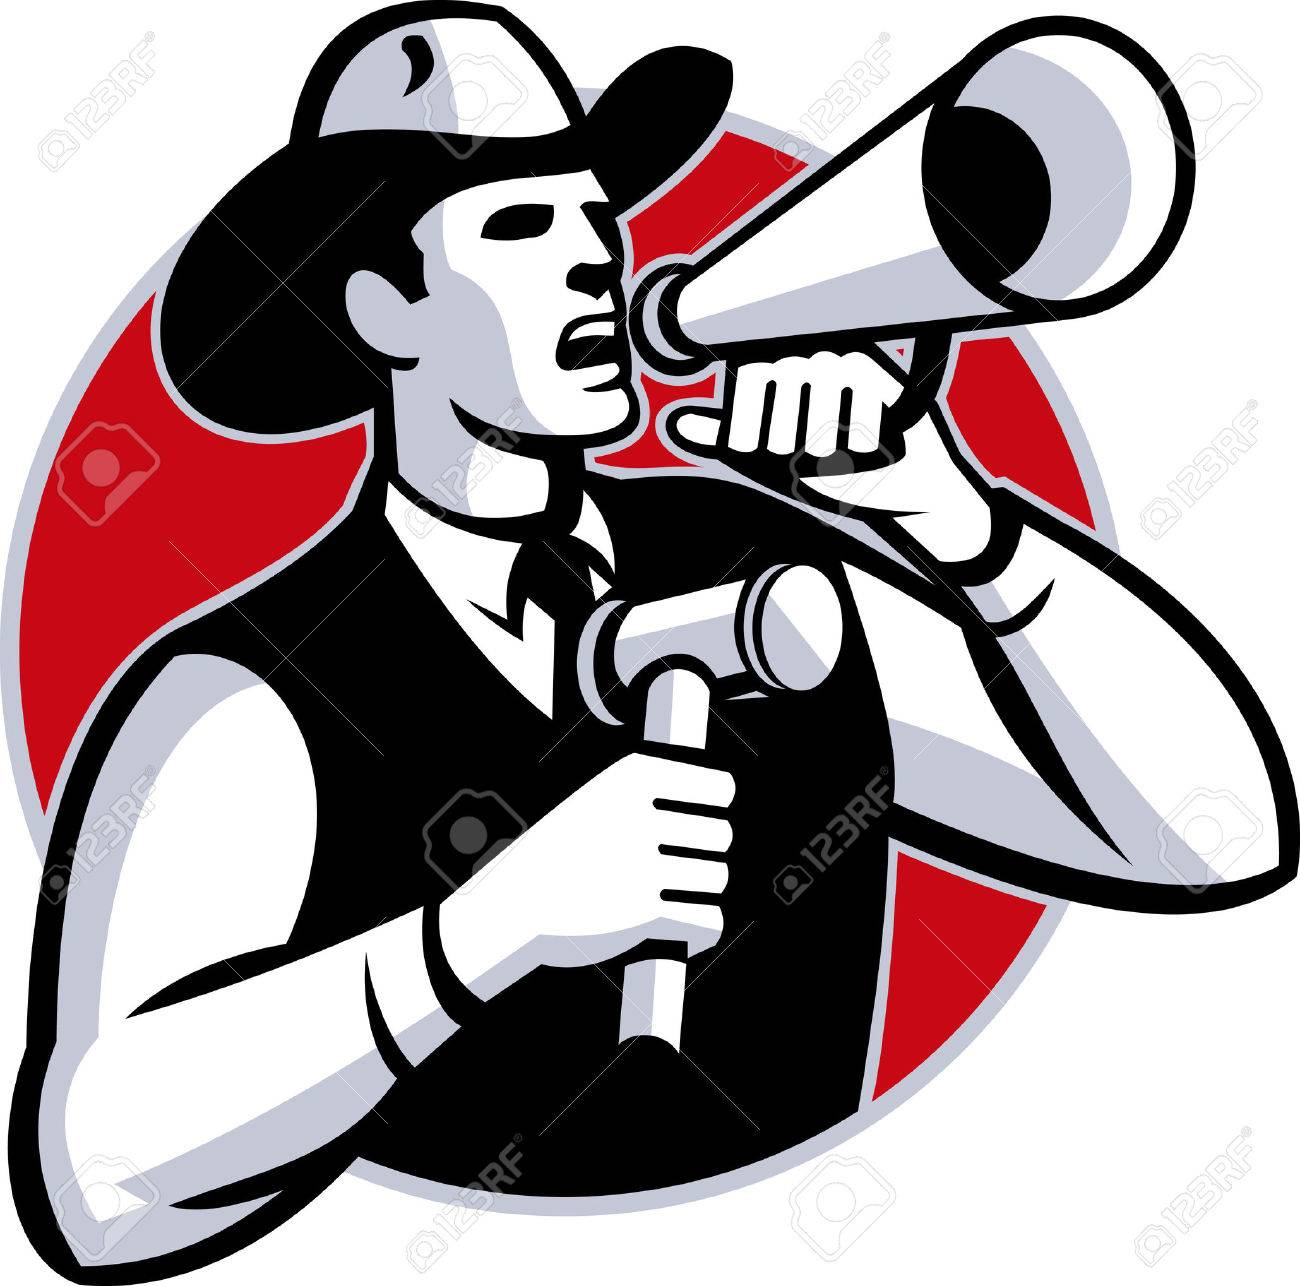 Illustration of a cowboy auctioneer with gavel hammer shouting on bullhorn set inside circle done in retro style. - 35306060